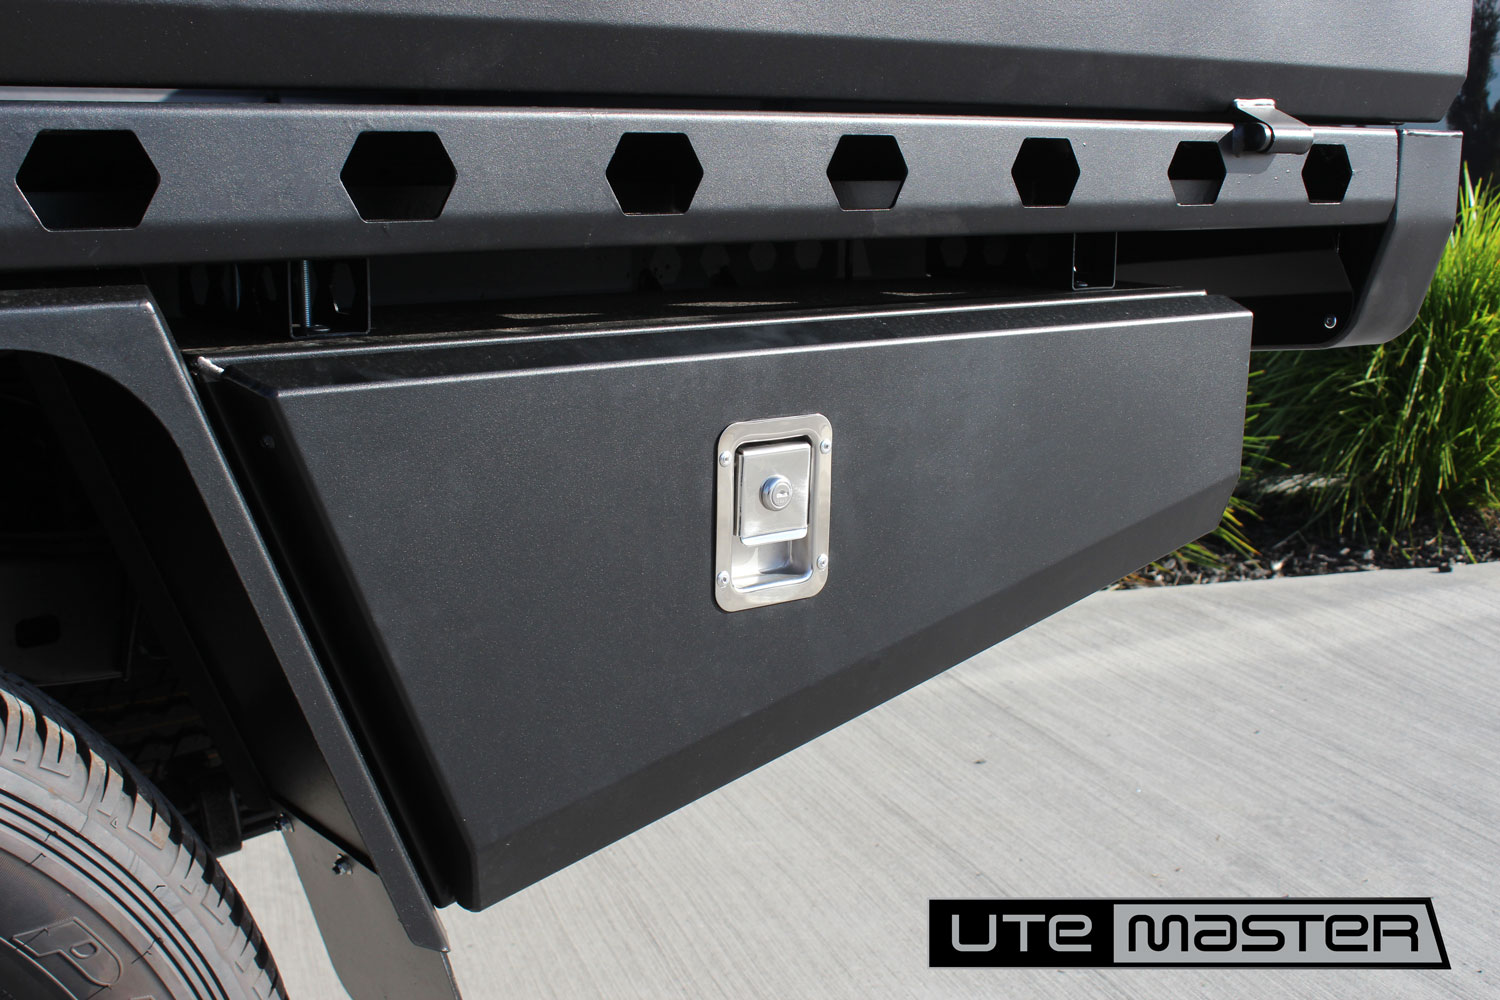 Underbody Toolboxes to suit Utemaster Steel Flat Deck Toyota Hilux Ute Tray